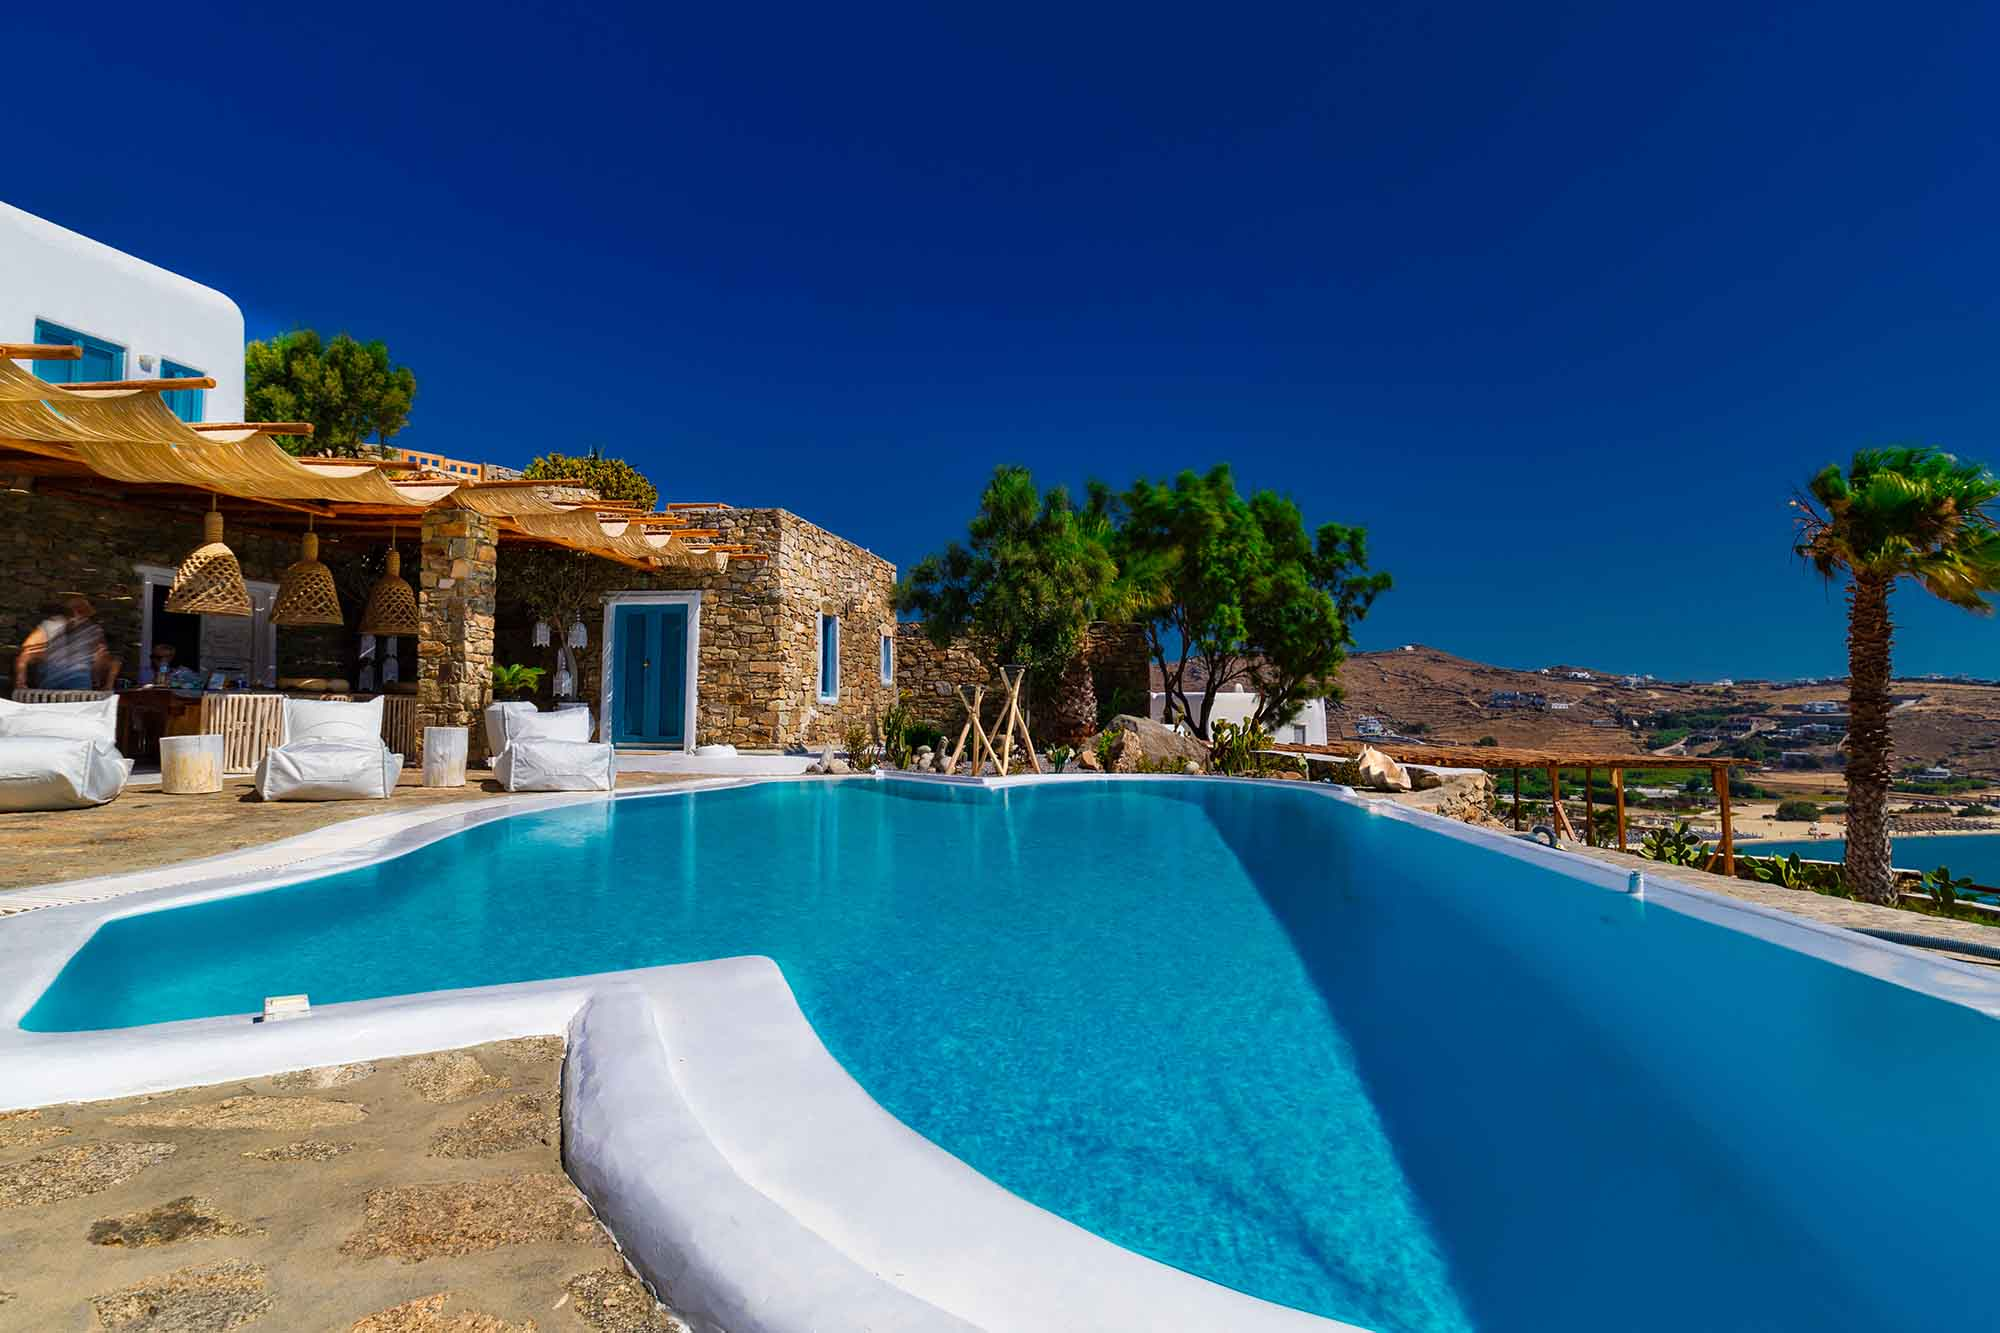 RENT A LUXURIOUS VILLA BY THE SEA IN MYKONOS - VILLA KARKOS - large blue pool